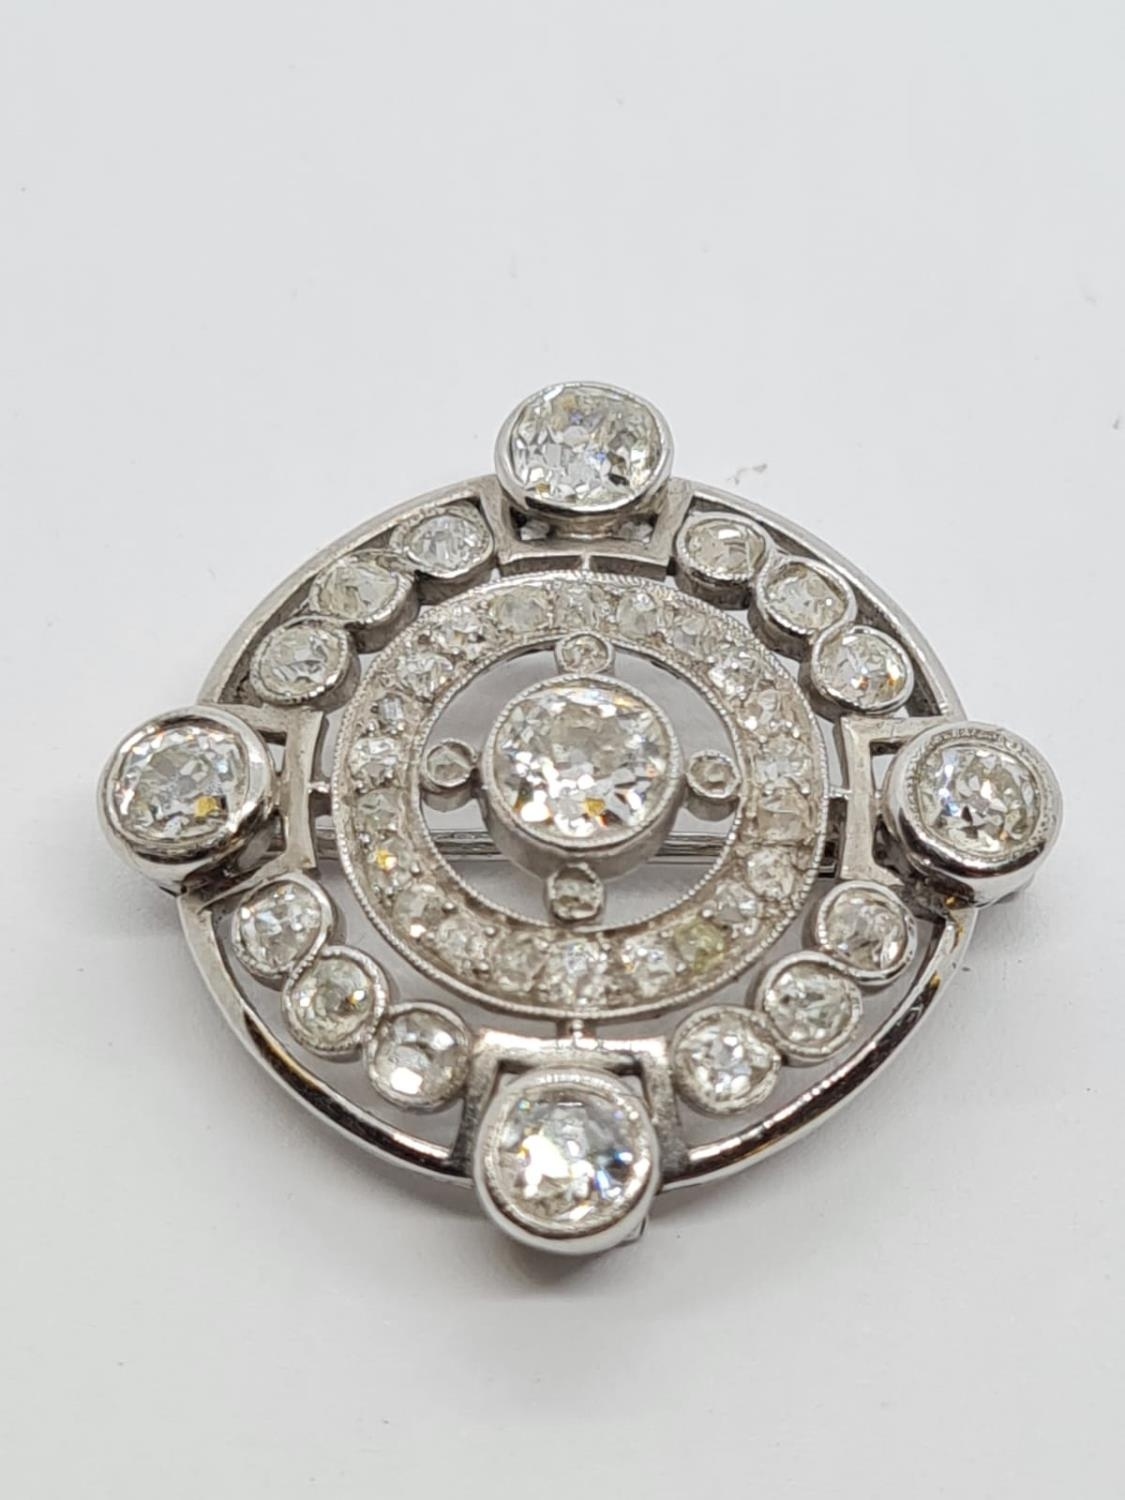 Vintage 18ct Gold and Diamond BROOCH having over 3 ct of fine quality of Diamonds. 8.3g 2.5 cm